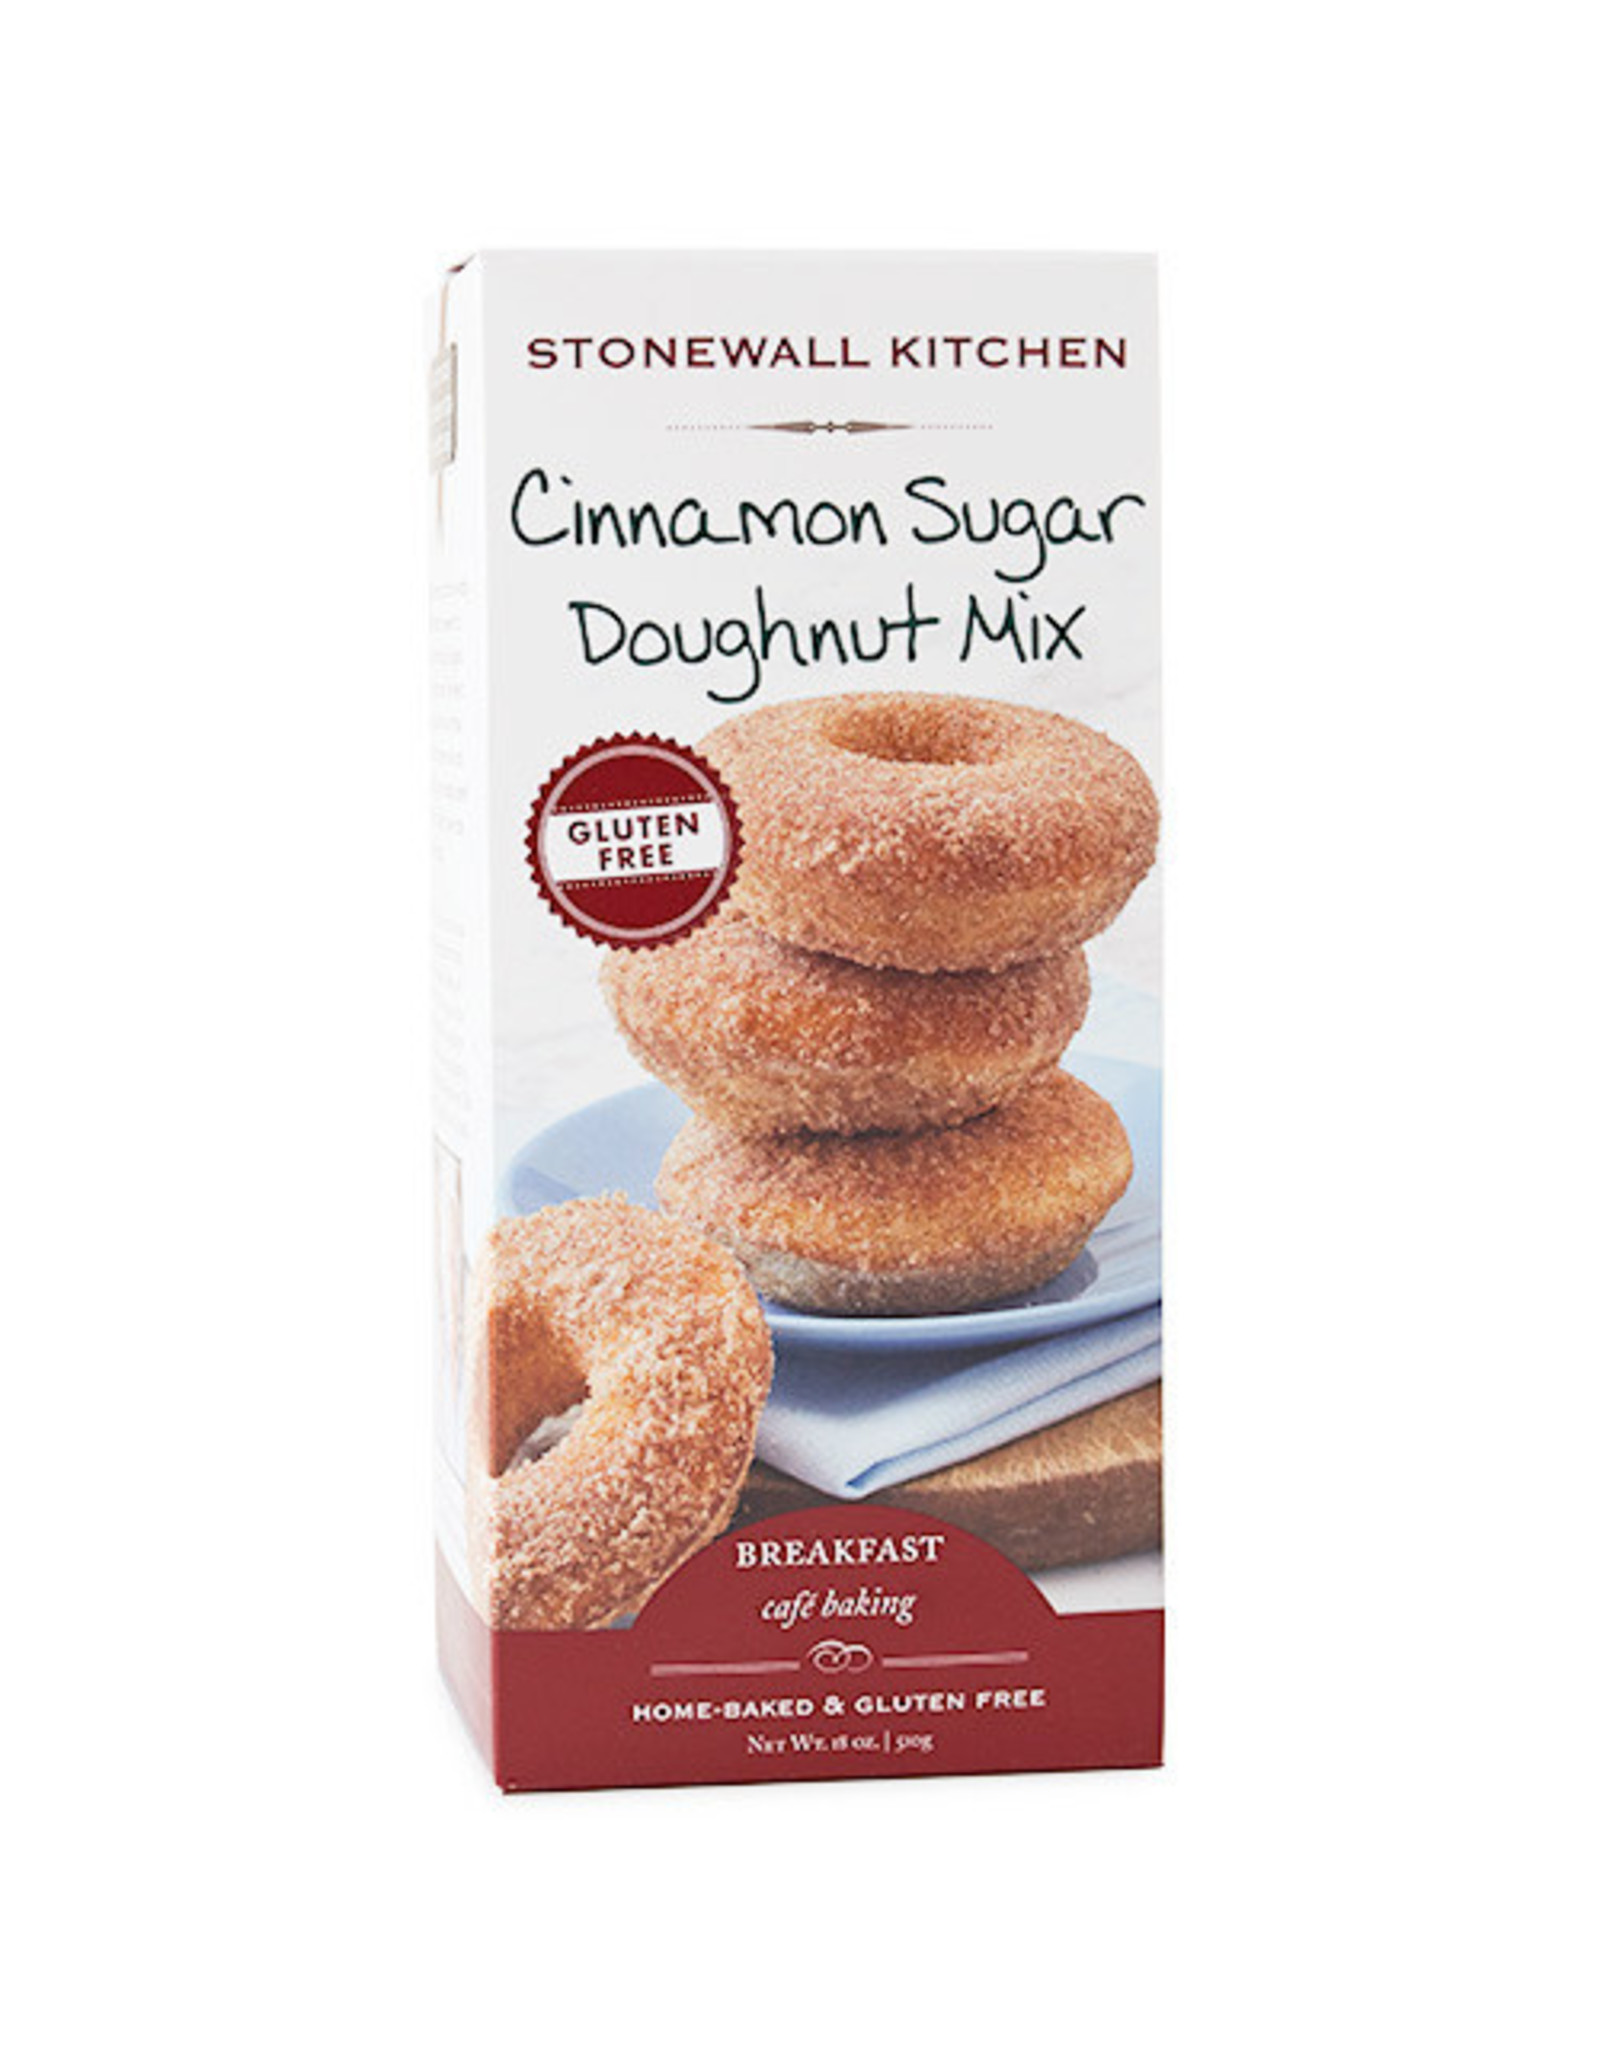 Stonewall Kitchen CINNAMON SUGAR DOUGHNUT MIX GLUTEN FREE